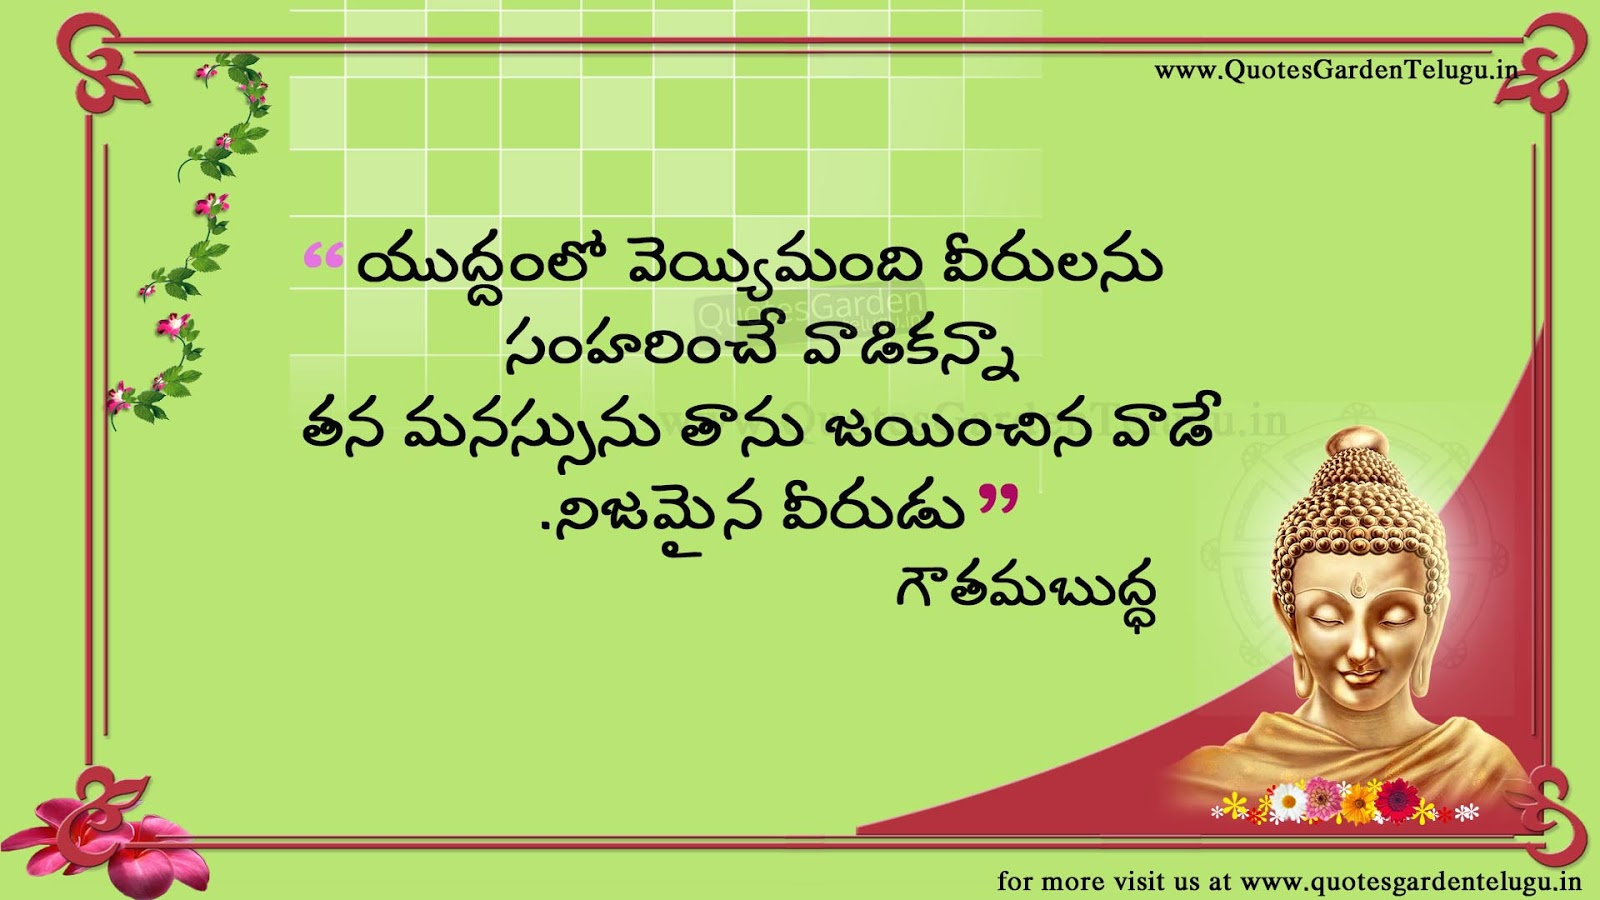 Great Telugu Quotations From Great Persons Quotes Garden Telugu Telugu Quotes English Quotes Hindi Quotes